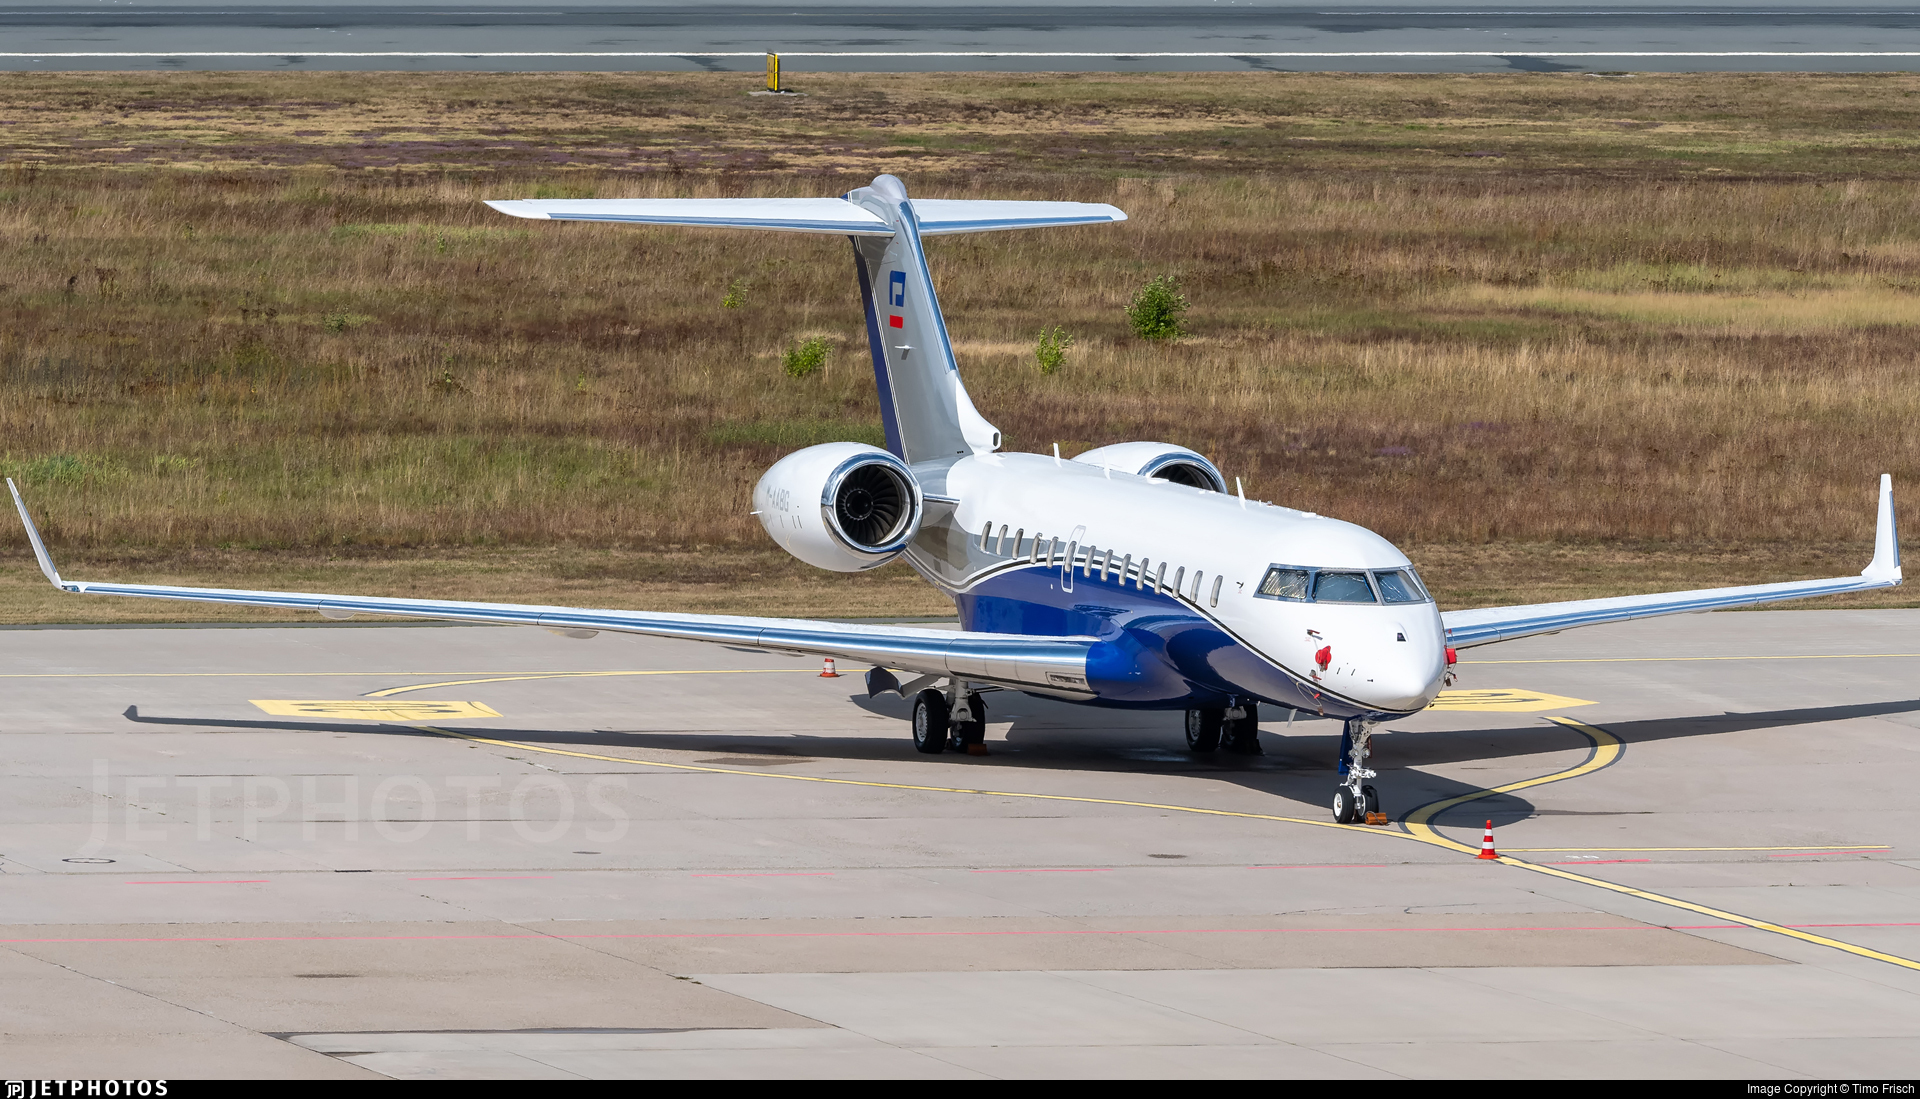 M-AABG - Bombardier BD-700-1A11 Global 5000 - ExecuJet Middle East